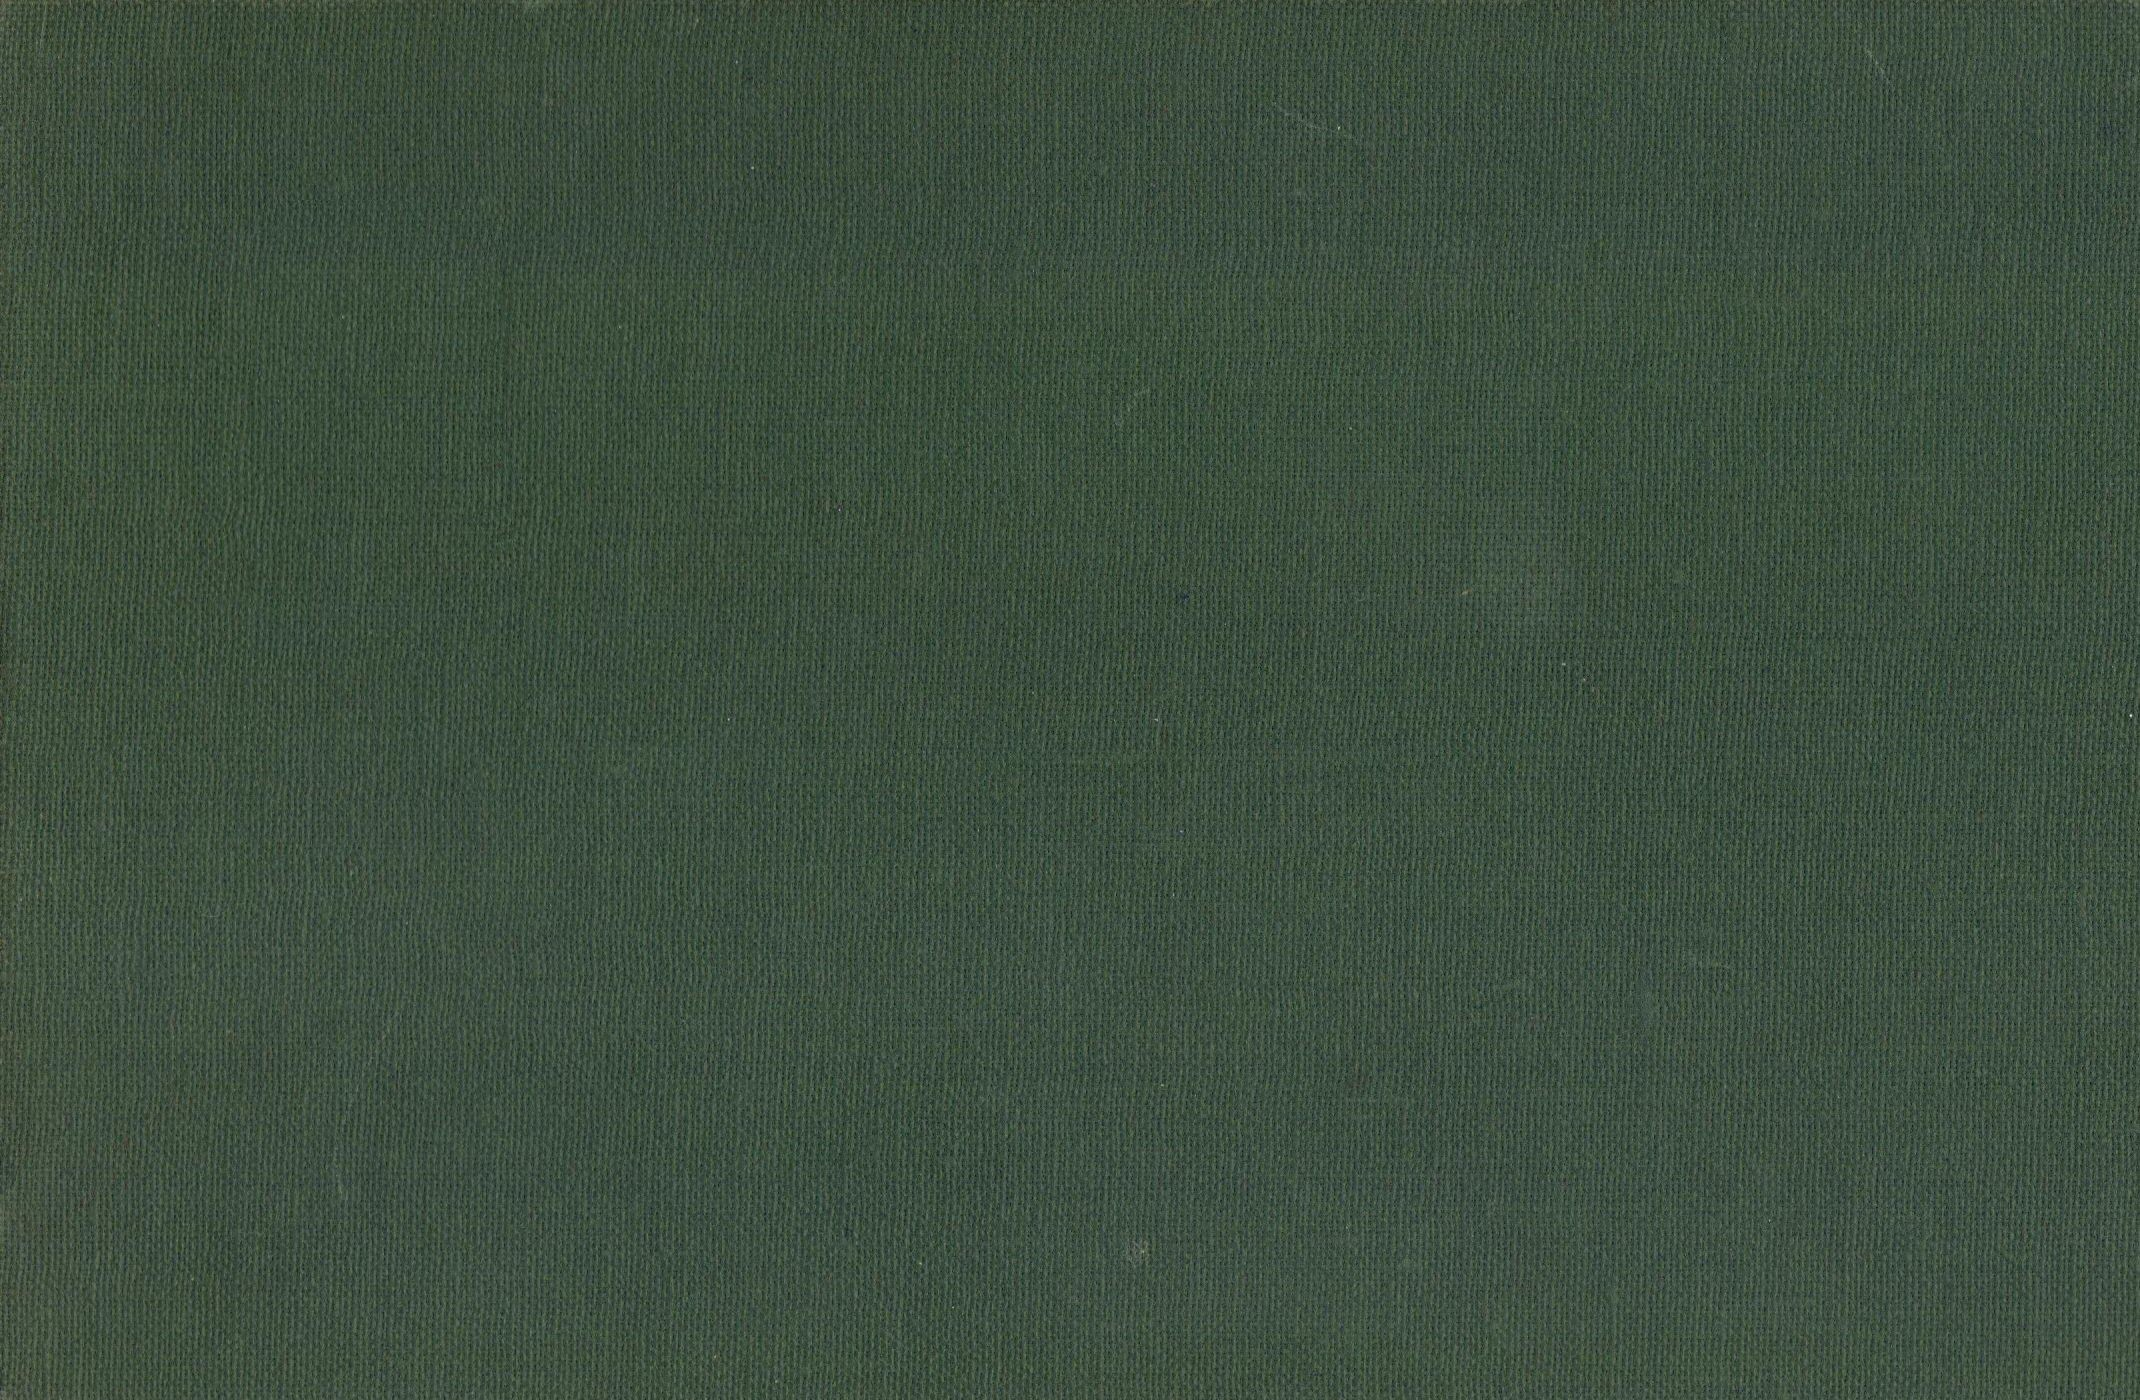 2140x1400 Down Free Plain Fabric Texture Dark Green Background